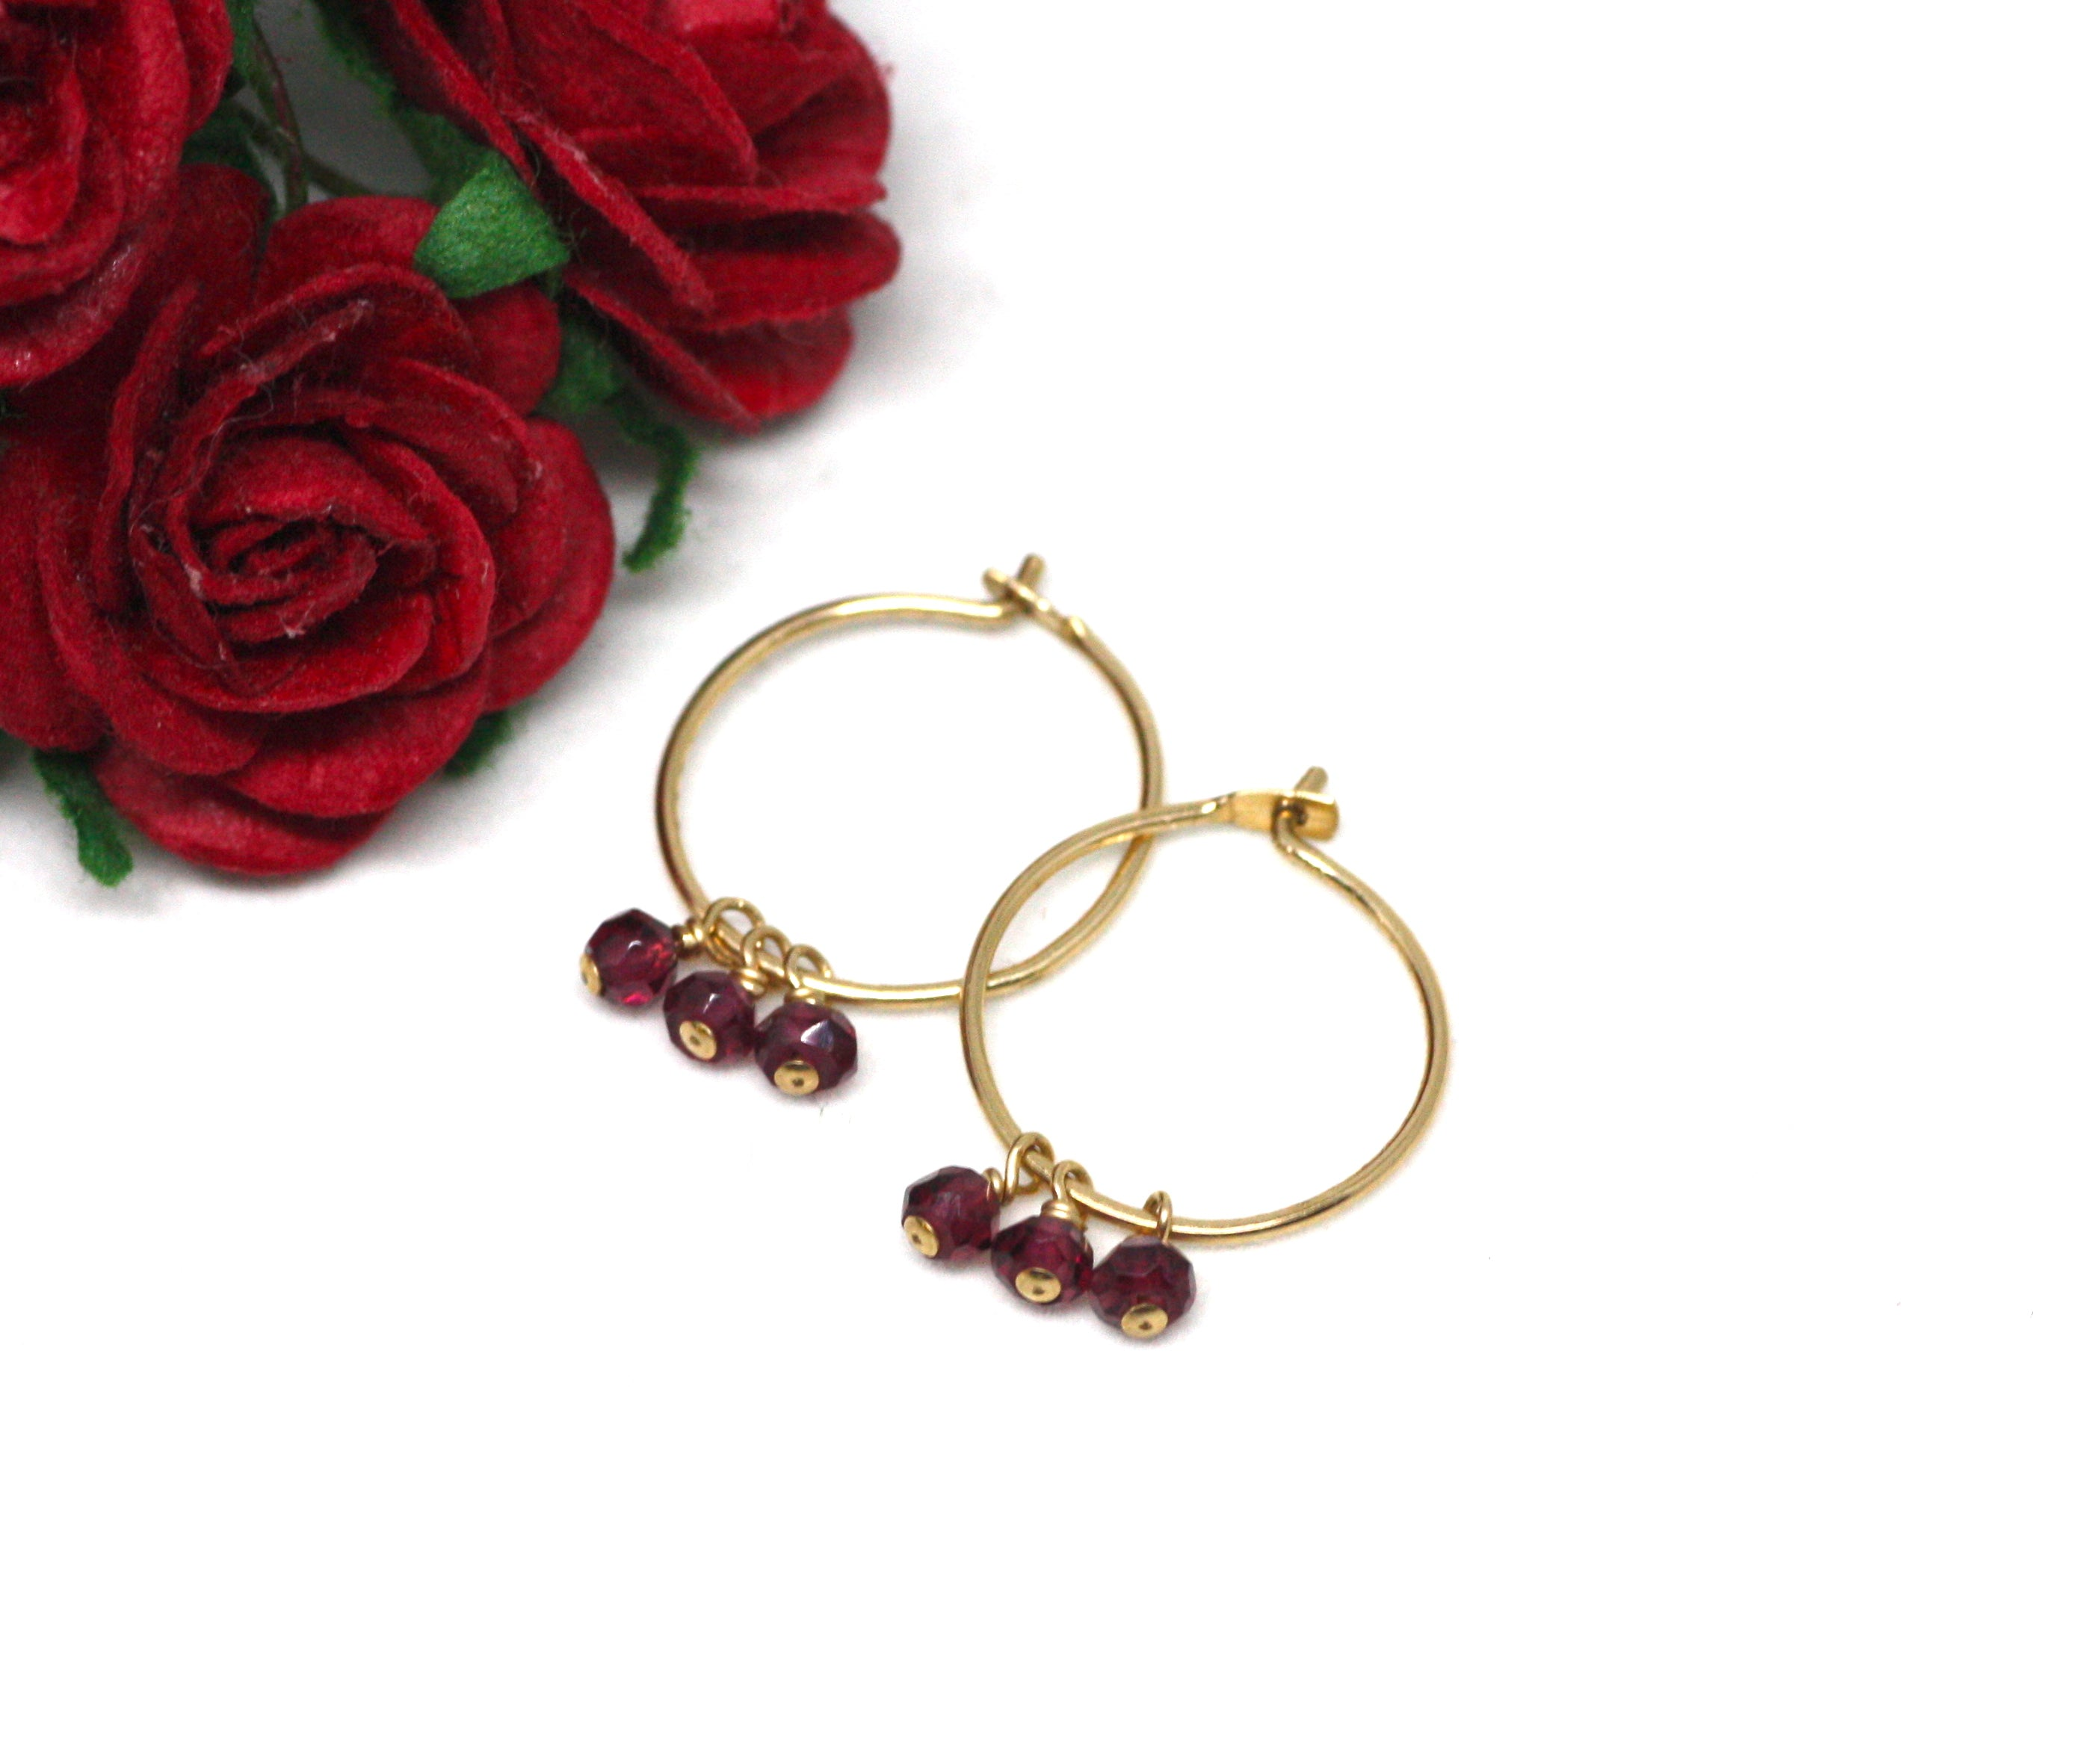 Garnet Small Hoop Earrings in Gold